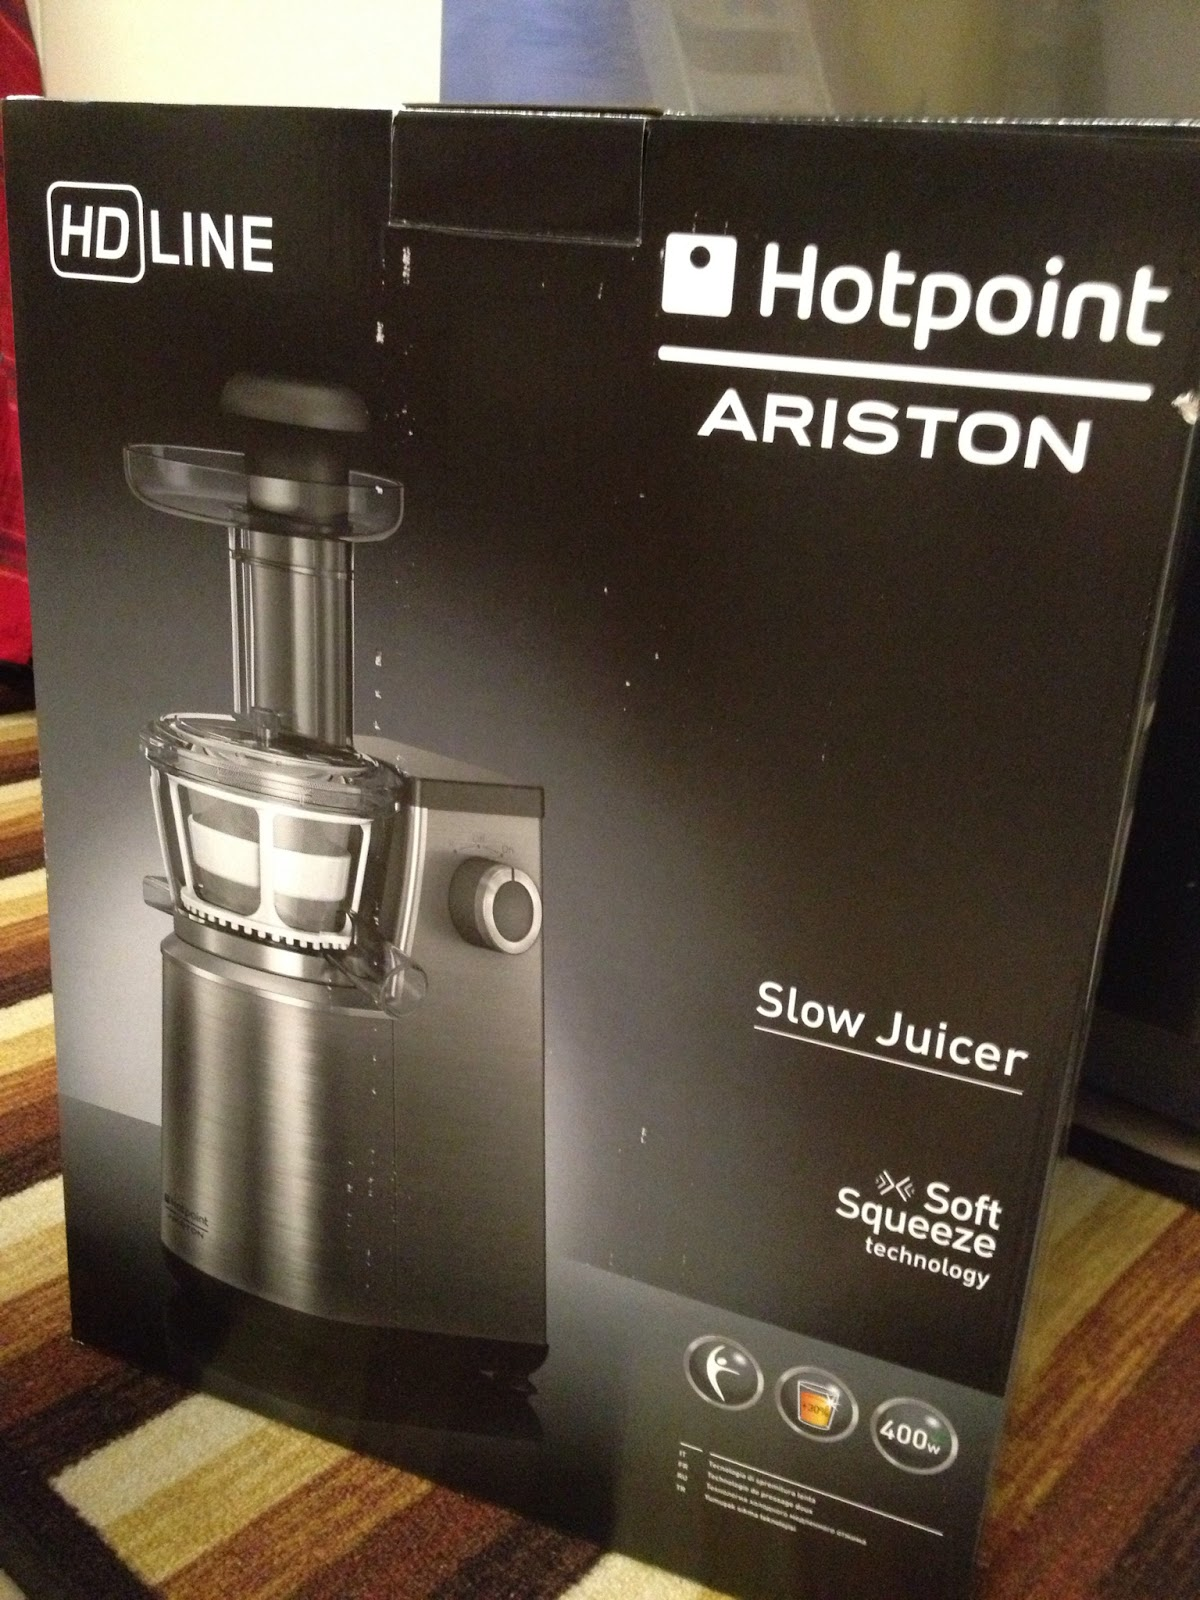 Hotpoint Estrattore Slow Juicer Sj4010ax1 : ???????: ????Hotpoint ariston Slow juicer